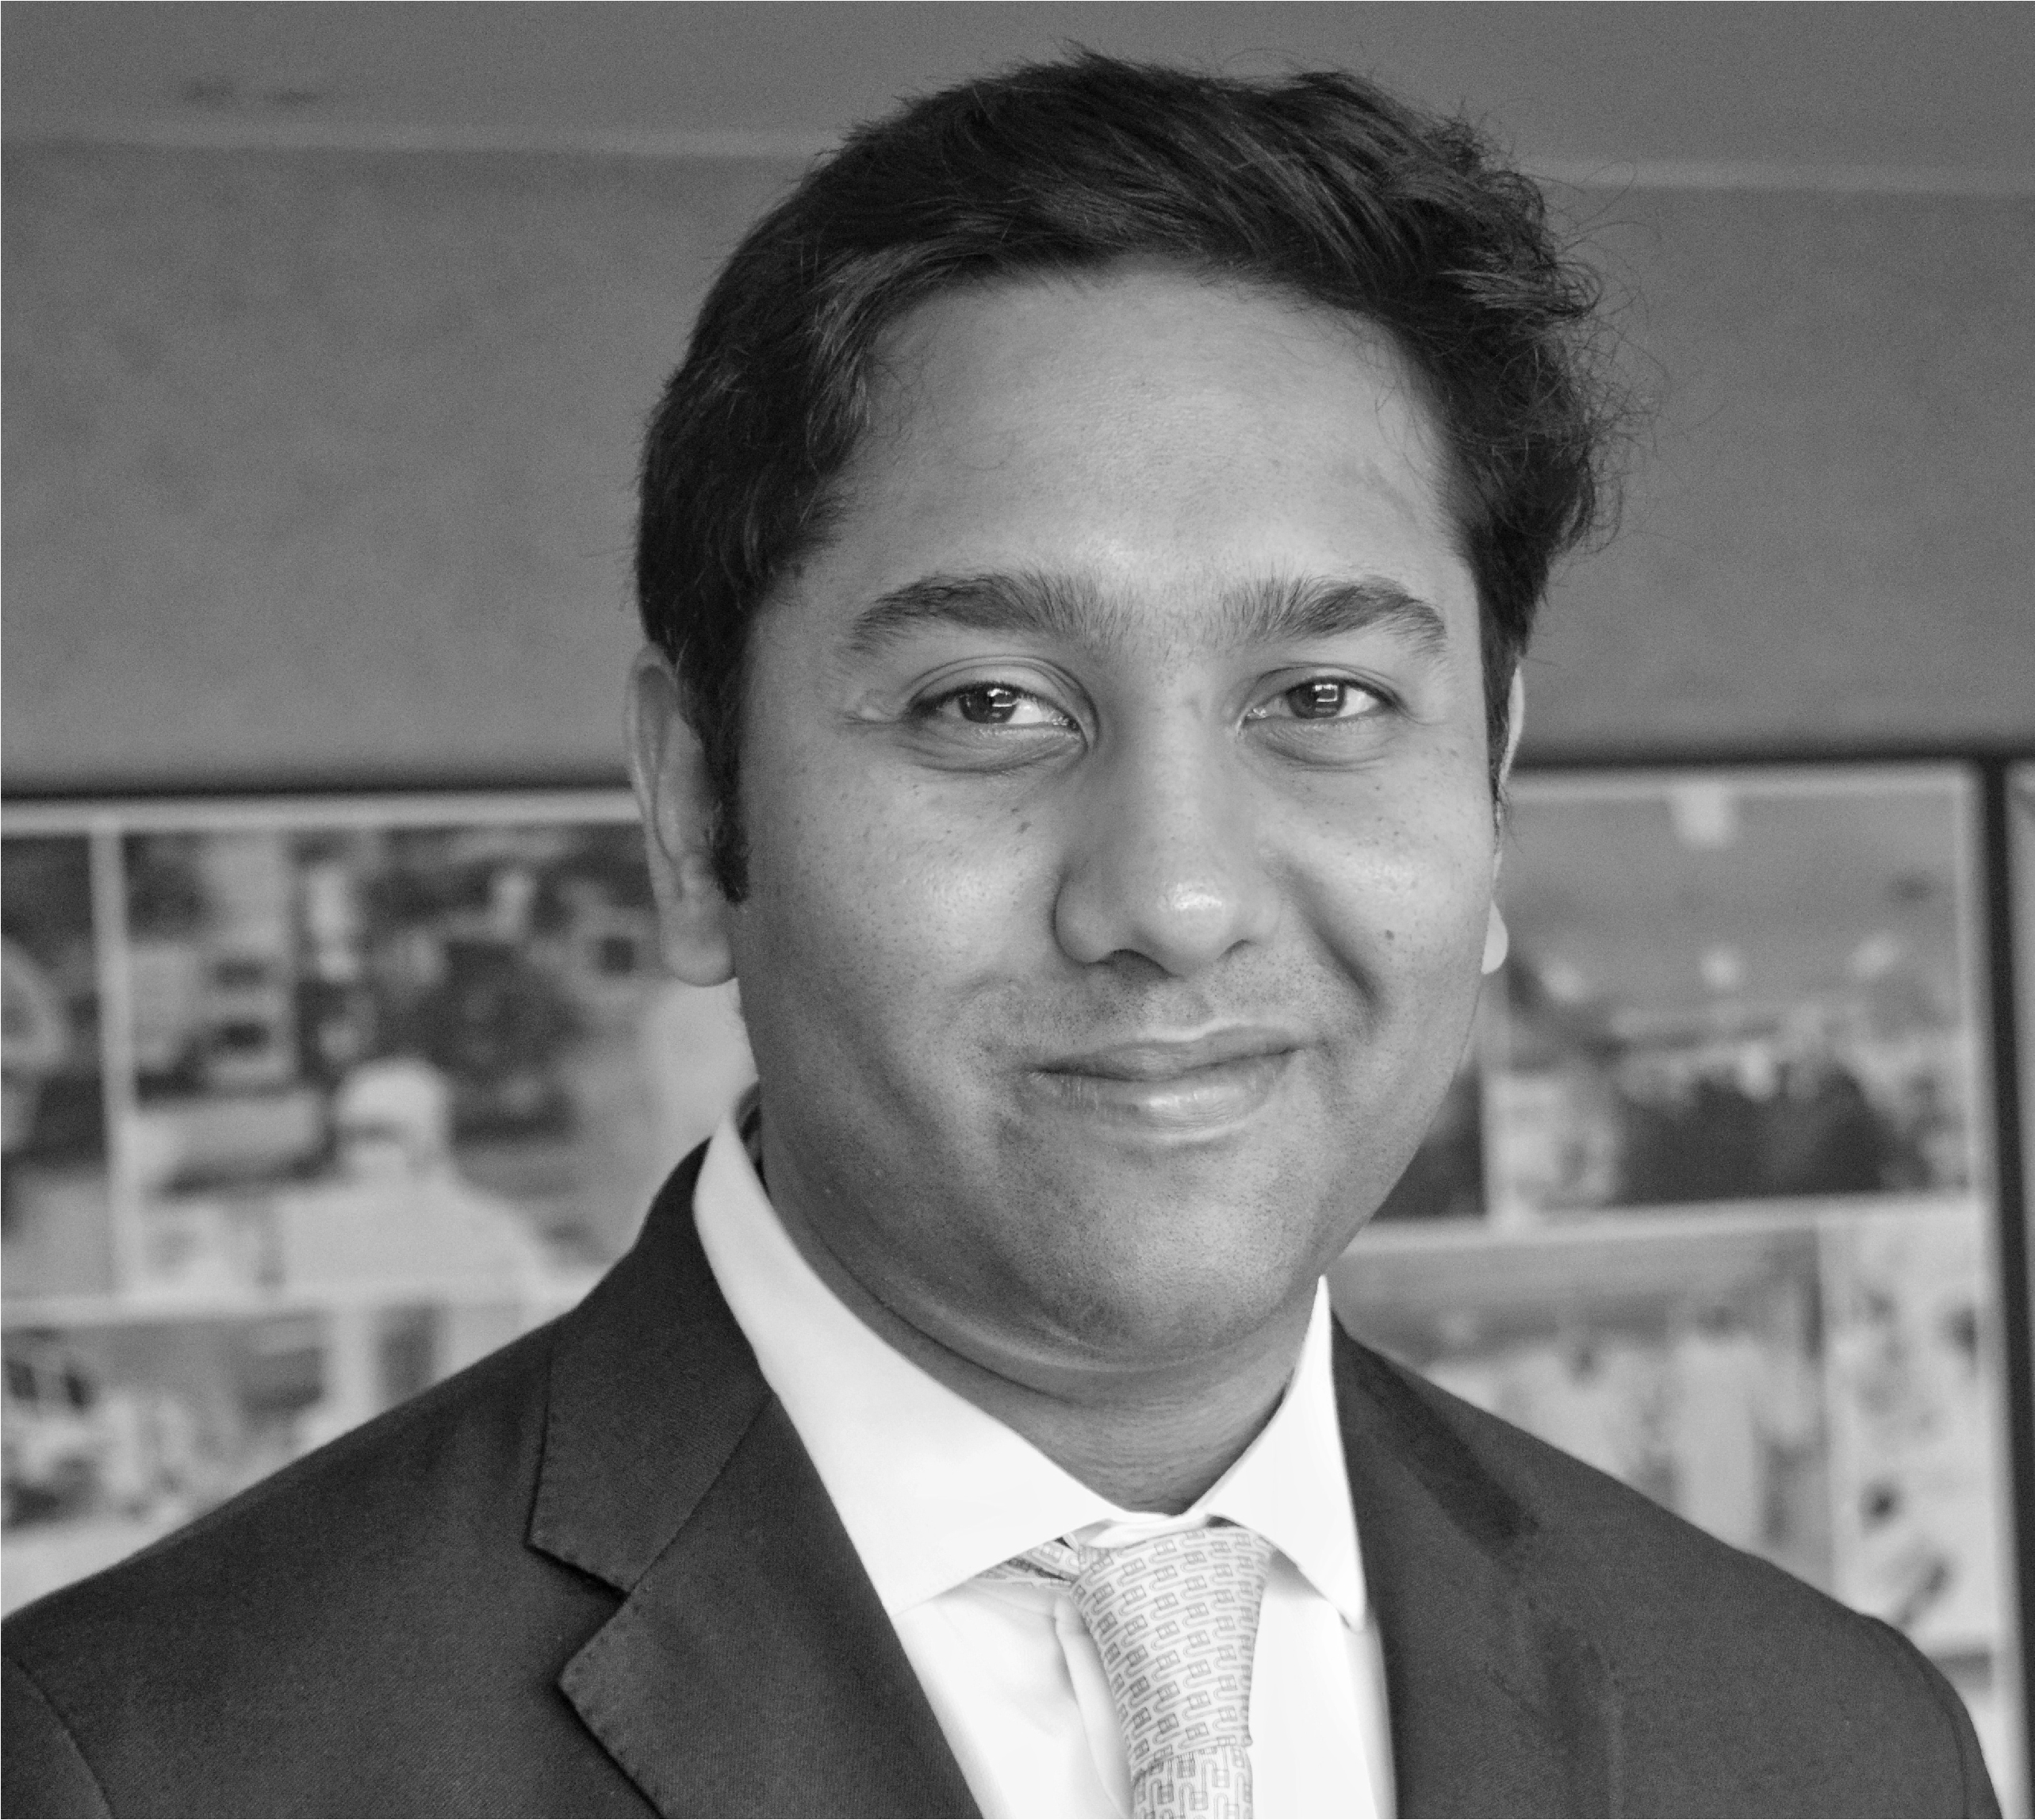 Nikhil Mallavarapu has been inducted on the Board of Directors of Centum Electronics Limited